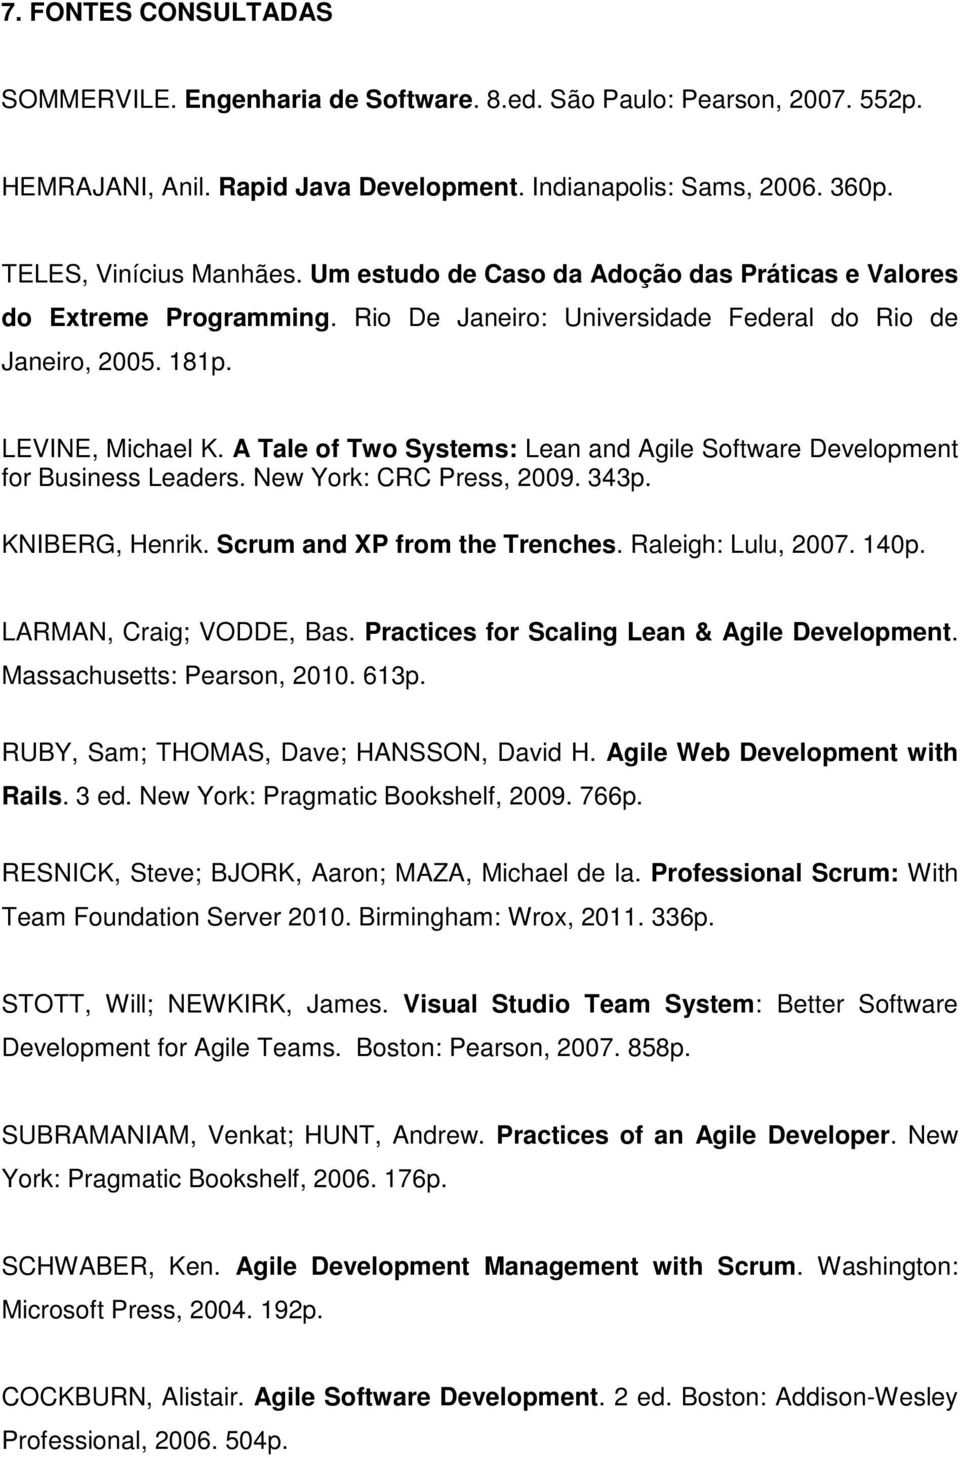 A Tale of Two Systems: Lean and Agile Software Development for Business Leaders. New York: CRC Press, 2009. 343p. KNIBERG, Henrik. Scrum and XP from the Trenches. Raleigh: Lulu, 2007. 140p.